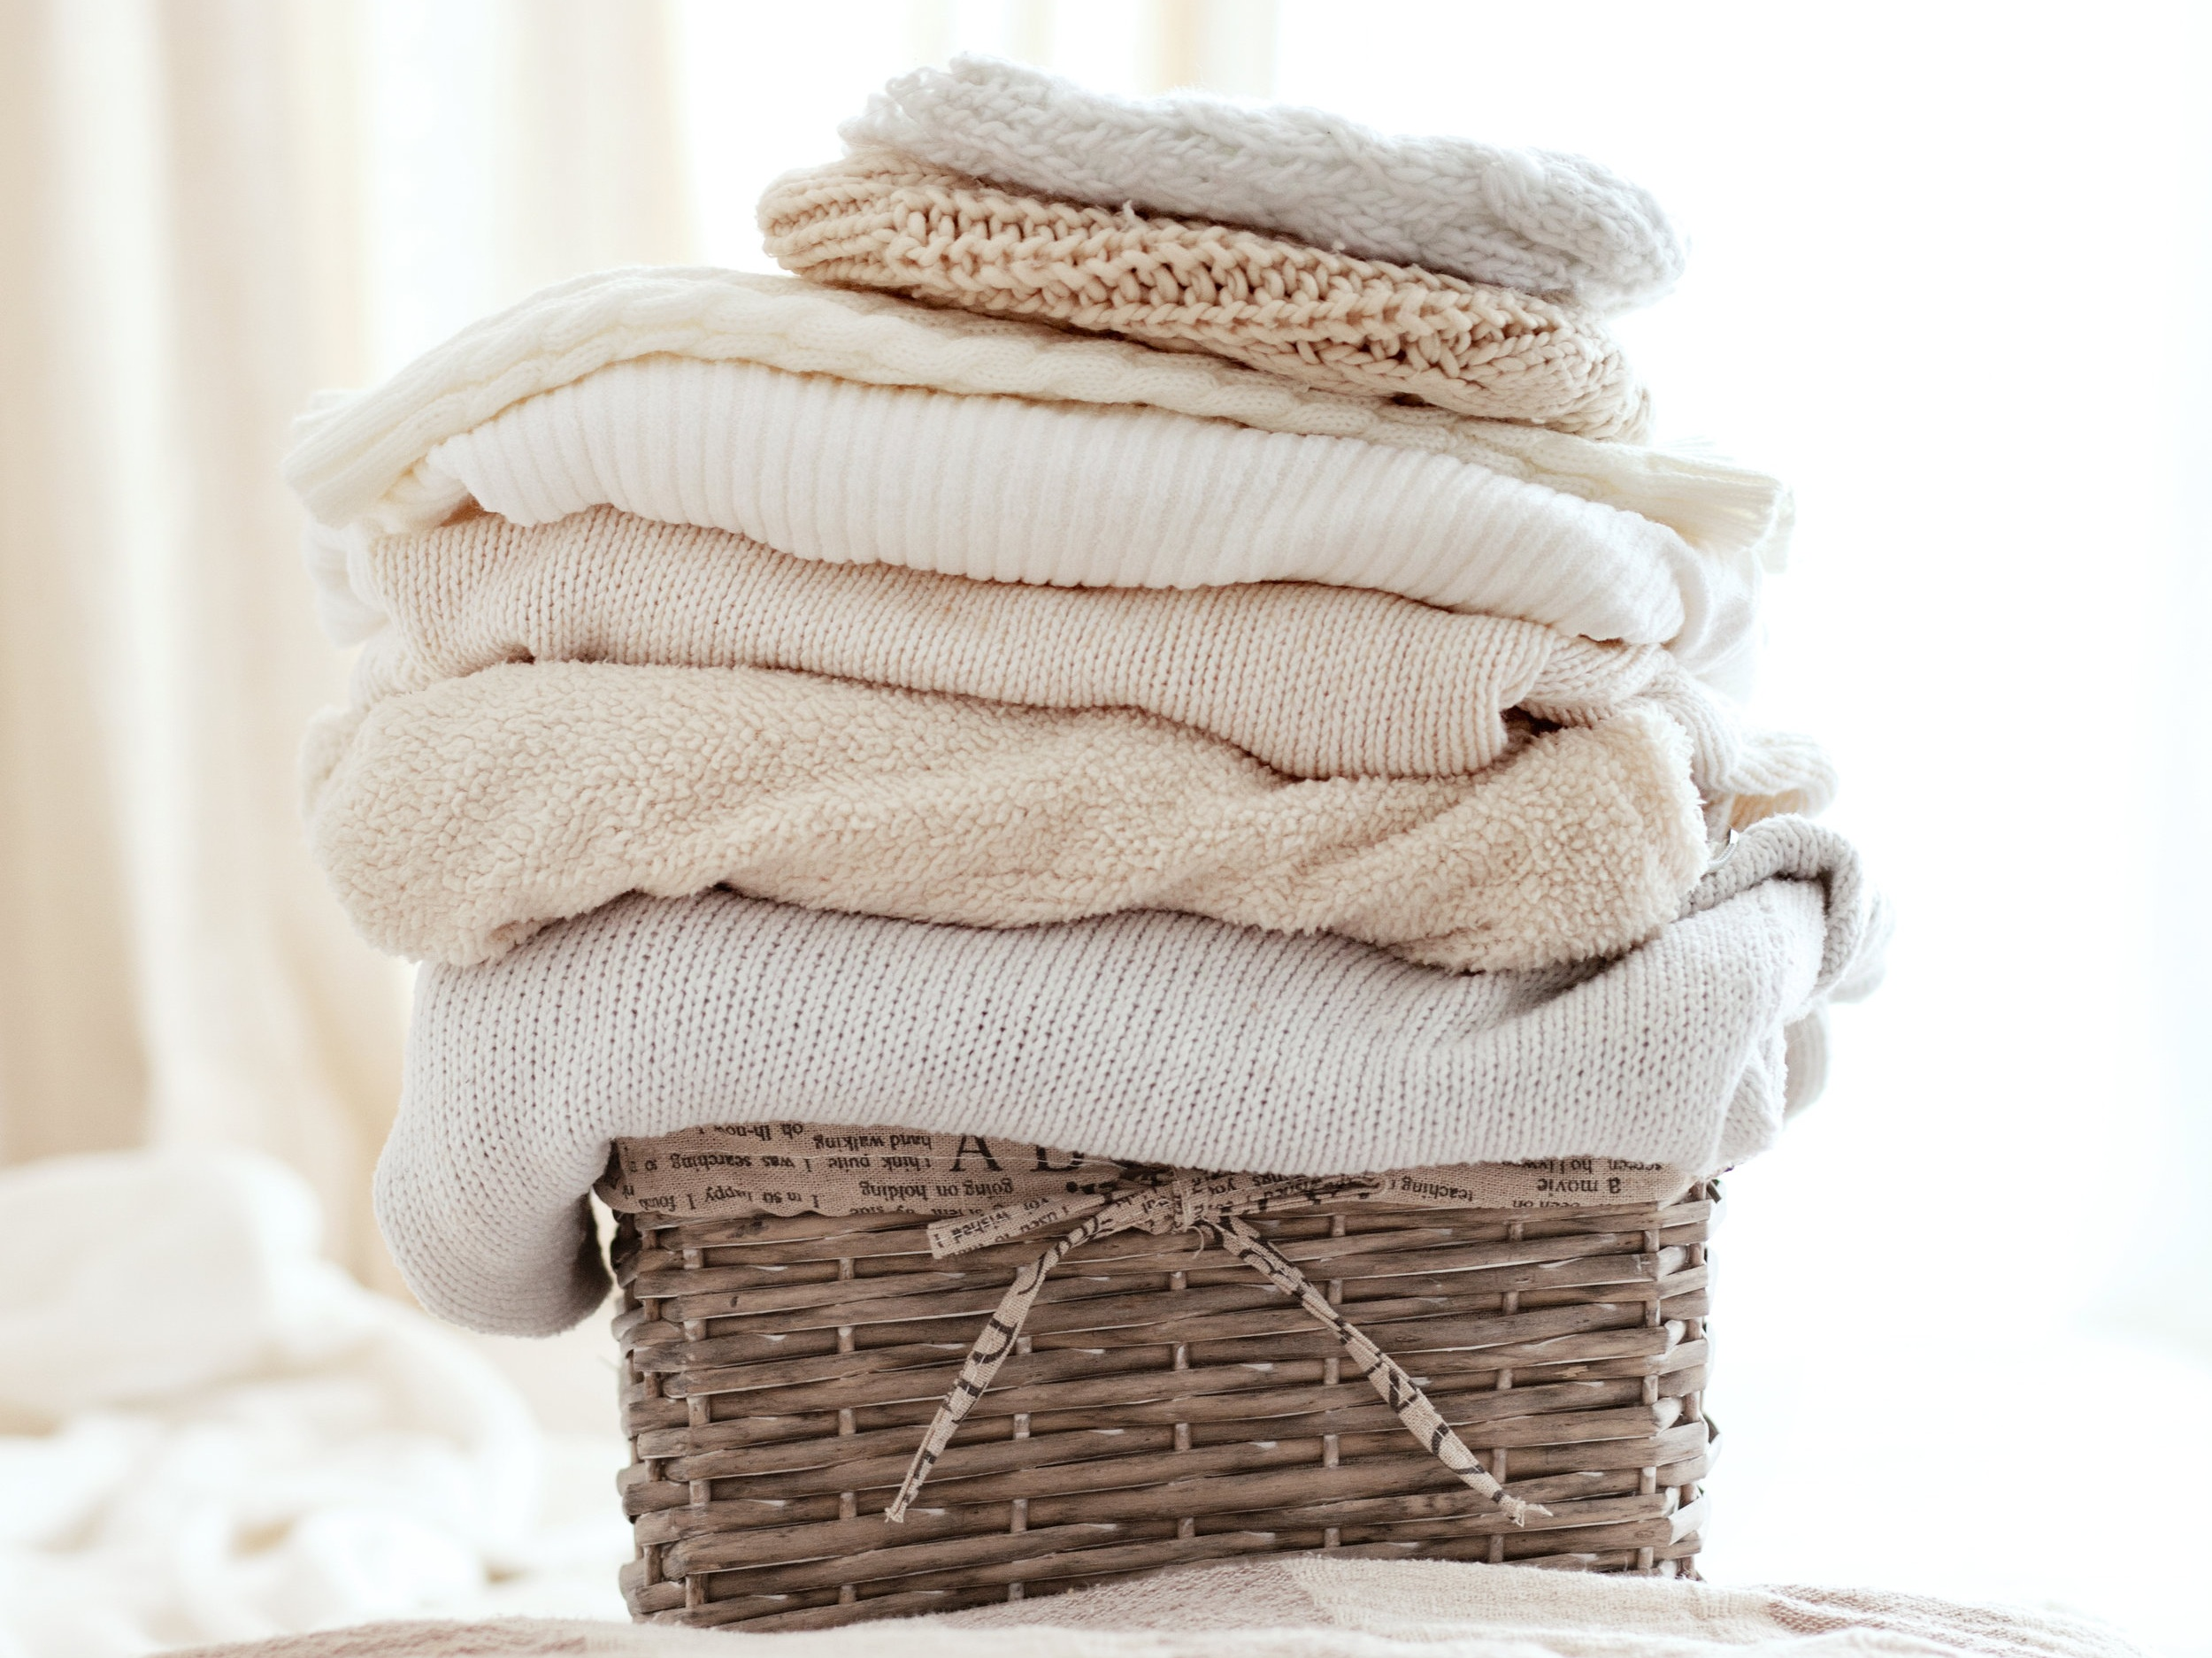 How to look after your Cashmere - To make them last longer